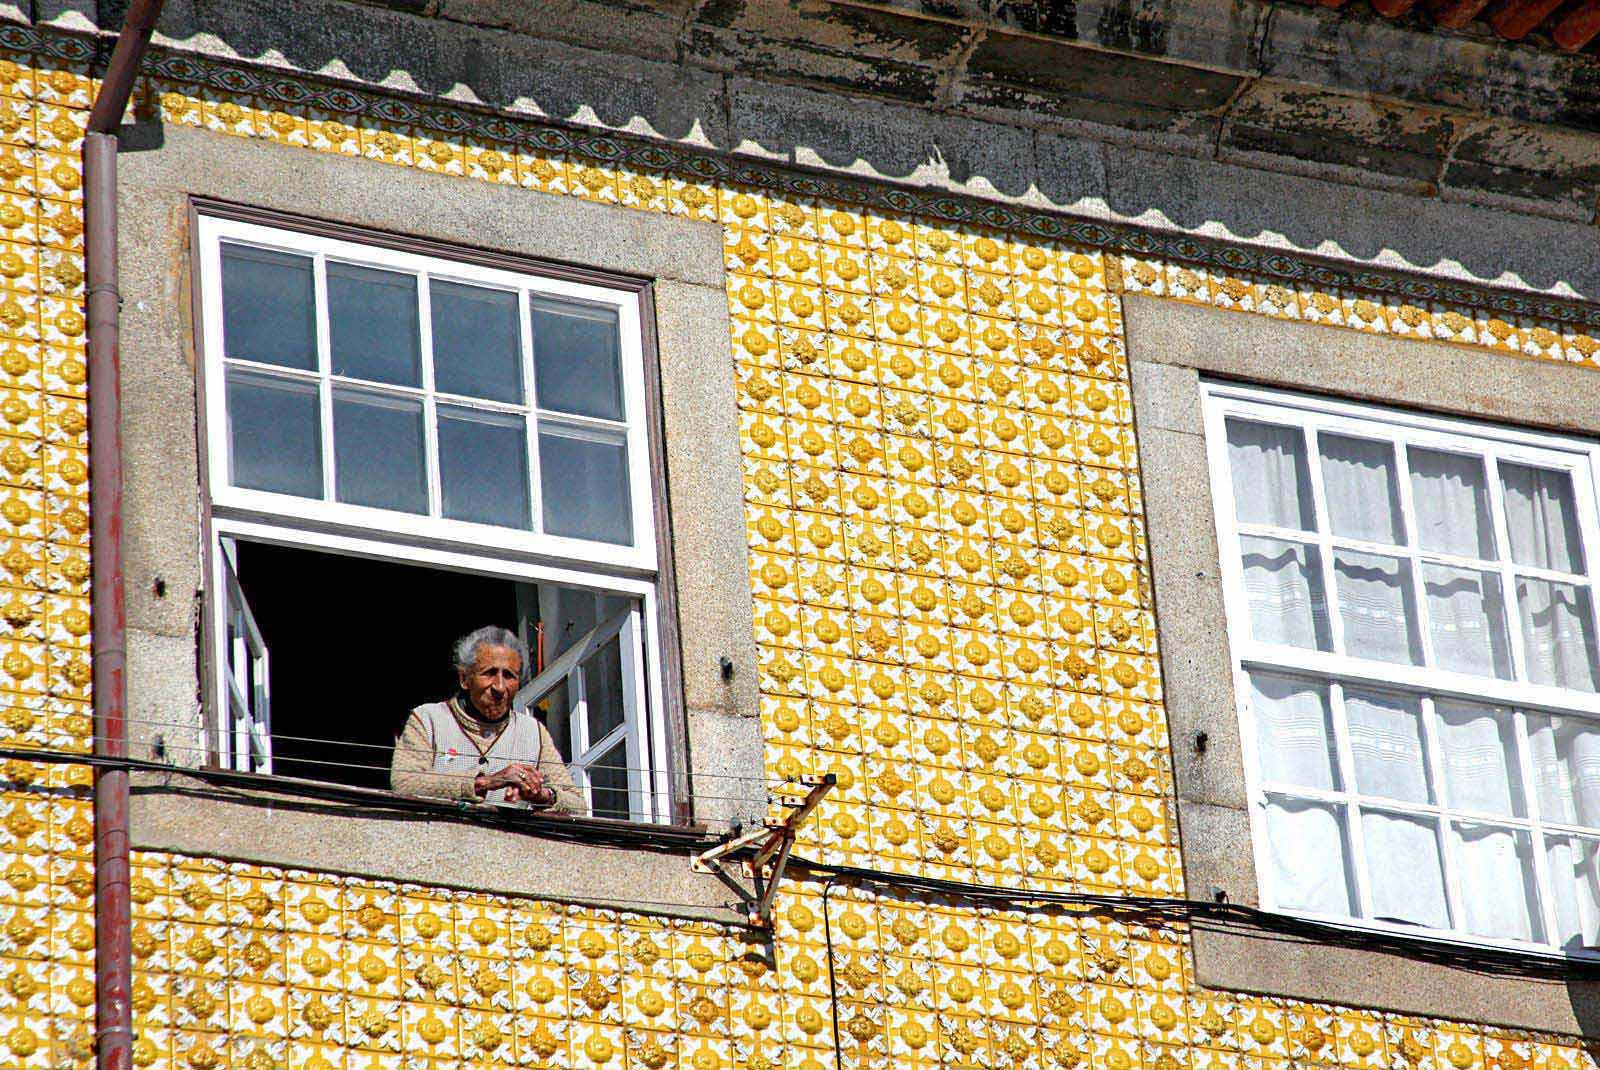 Portugal citizens. Porto. Portugal